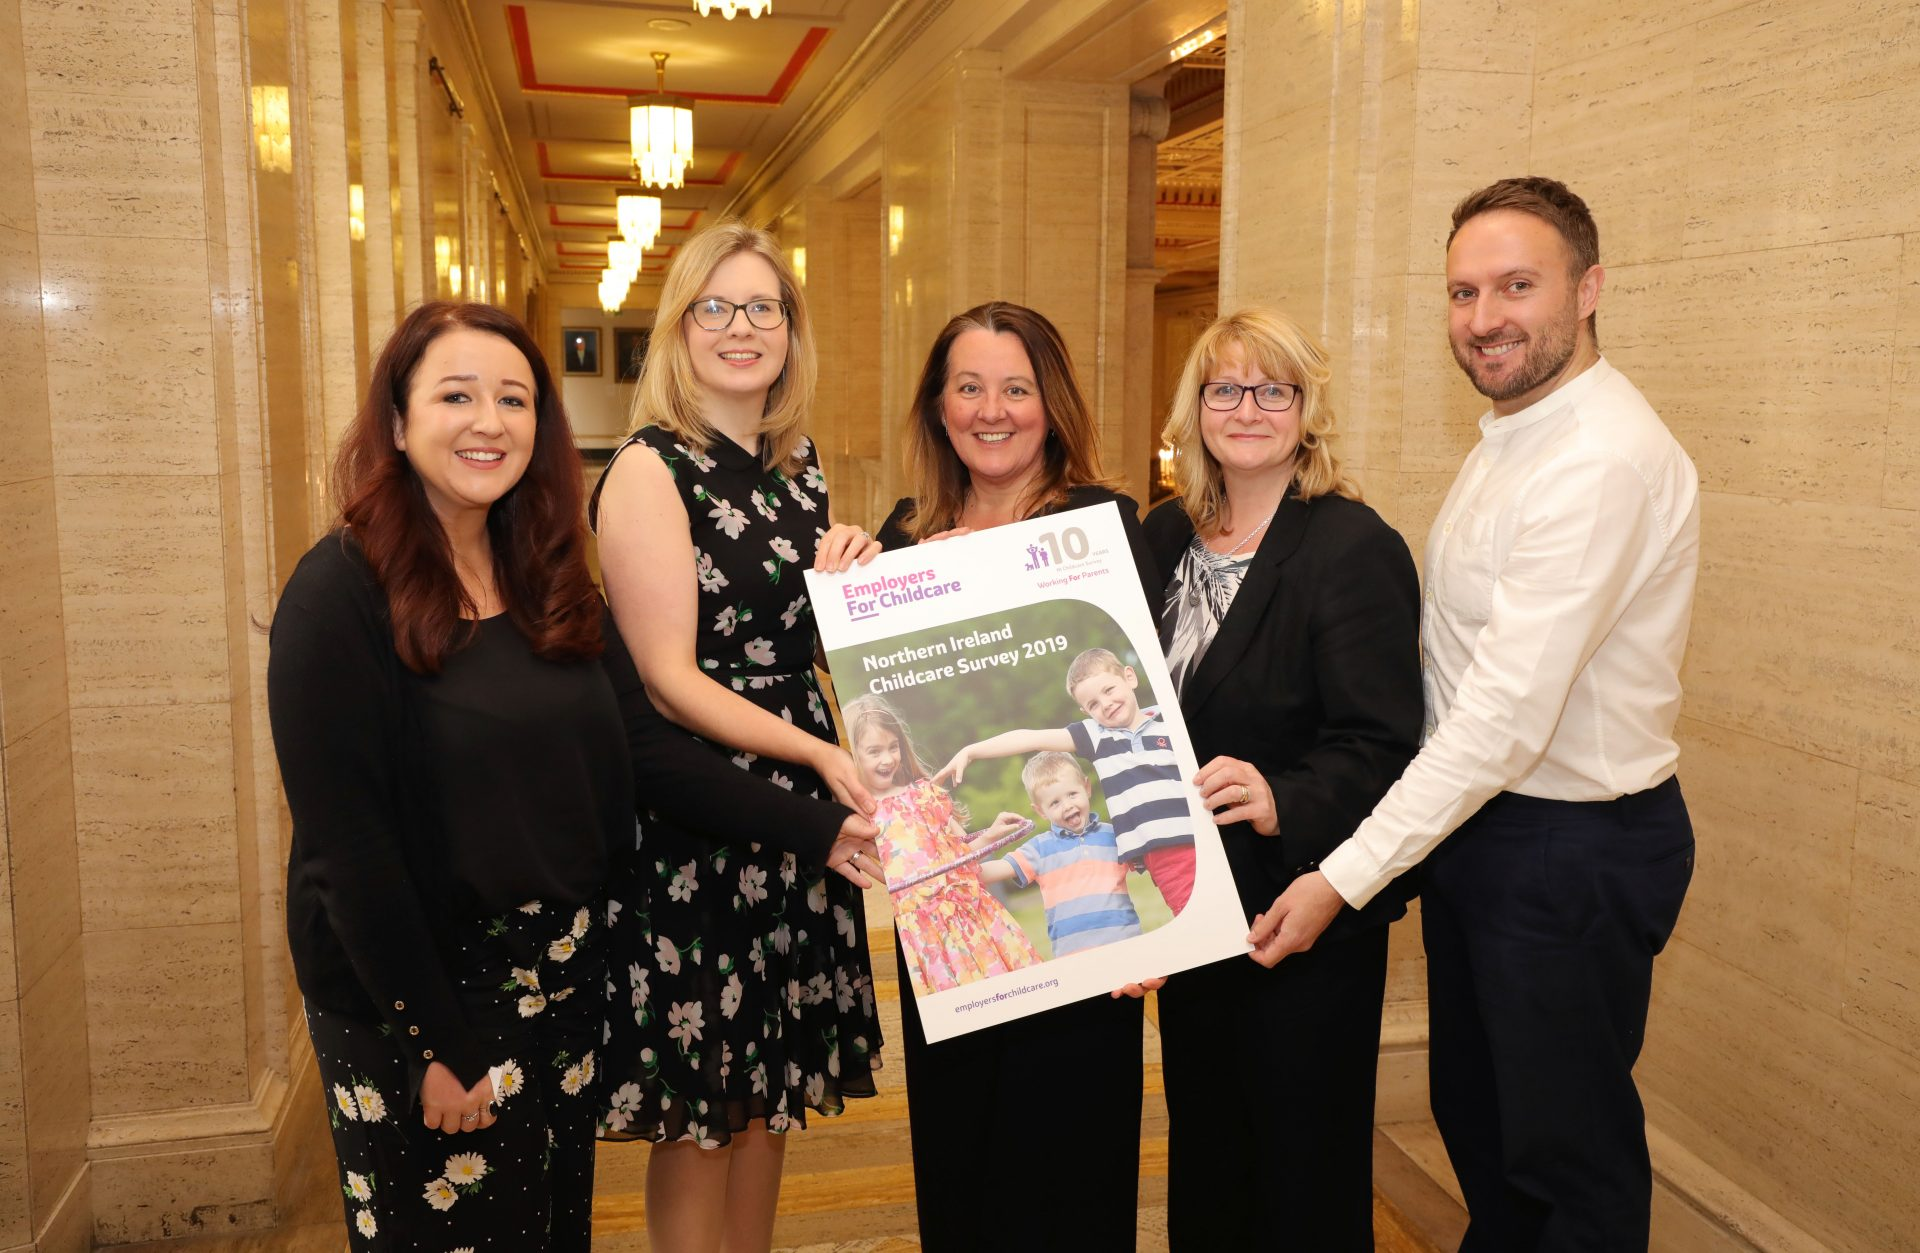 10th Annual Northern Ireland Childcare Survey launched